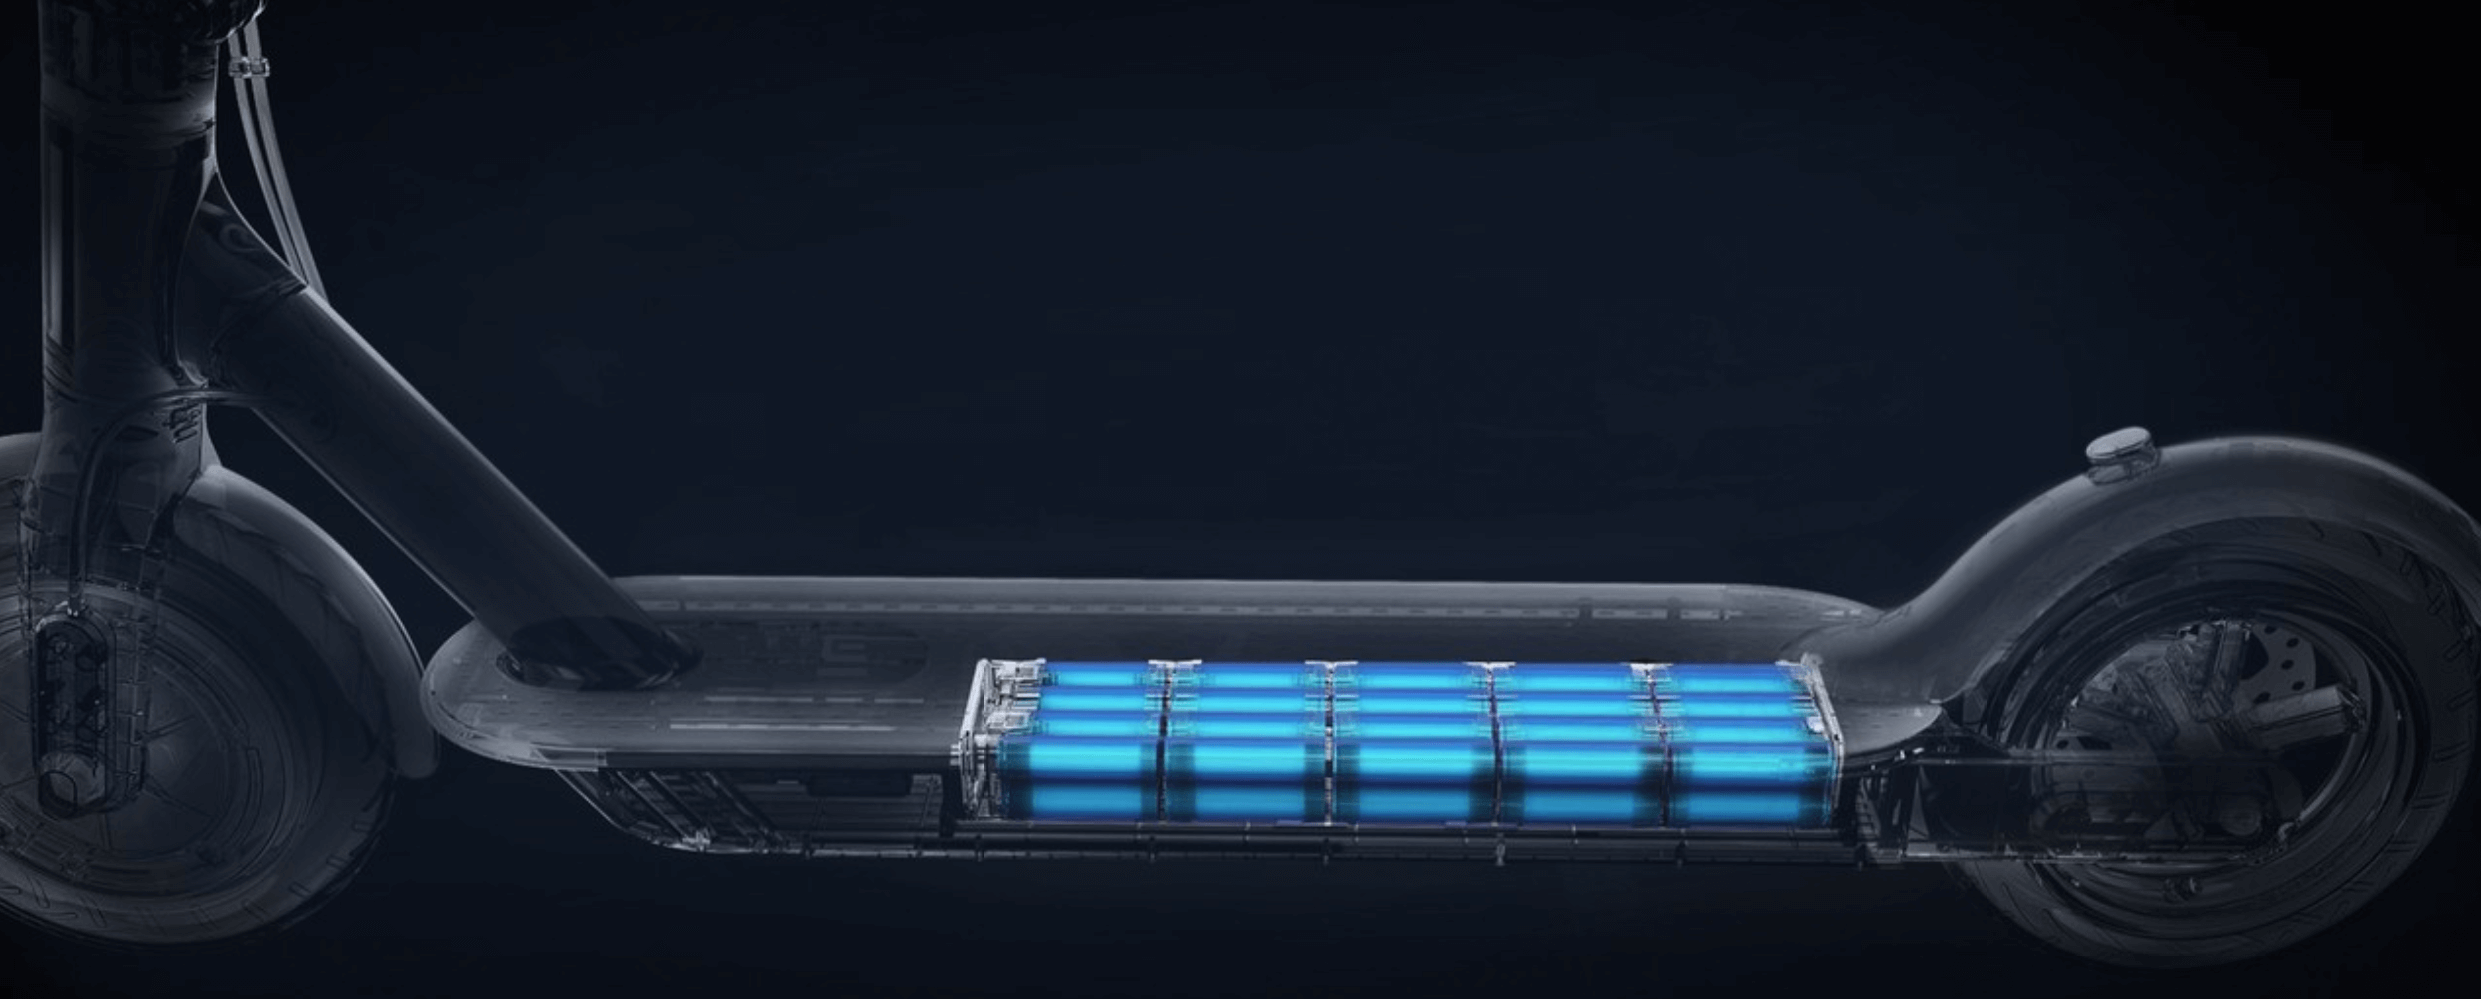 x-ray image of the M365 Pro battery pack